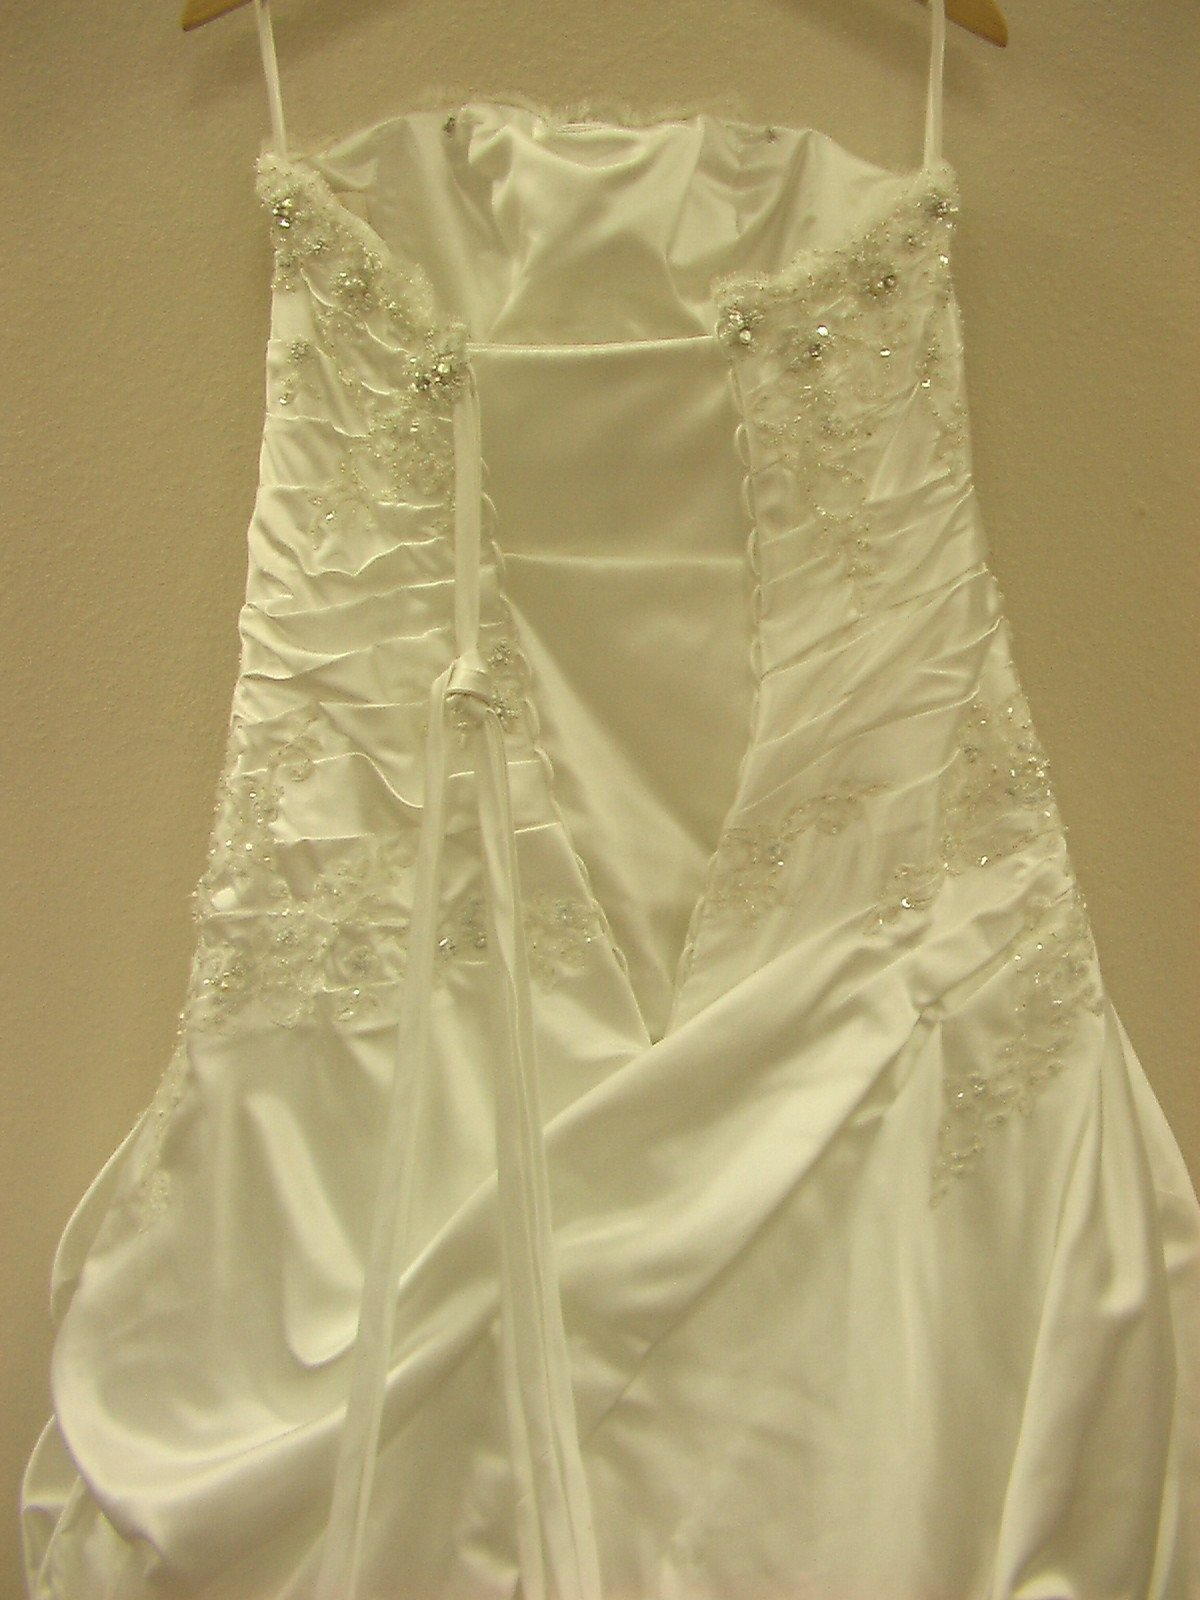 PC 18758 Ivory/Silver size 12 In Stock Wedding Dress - Tom's Bridal